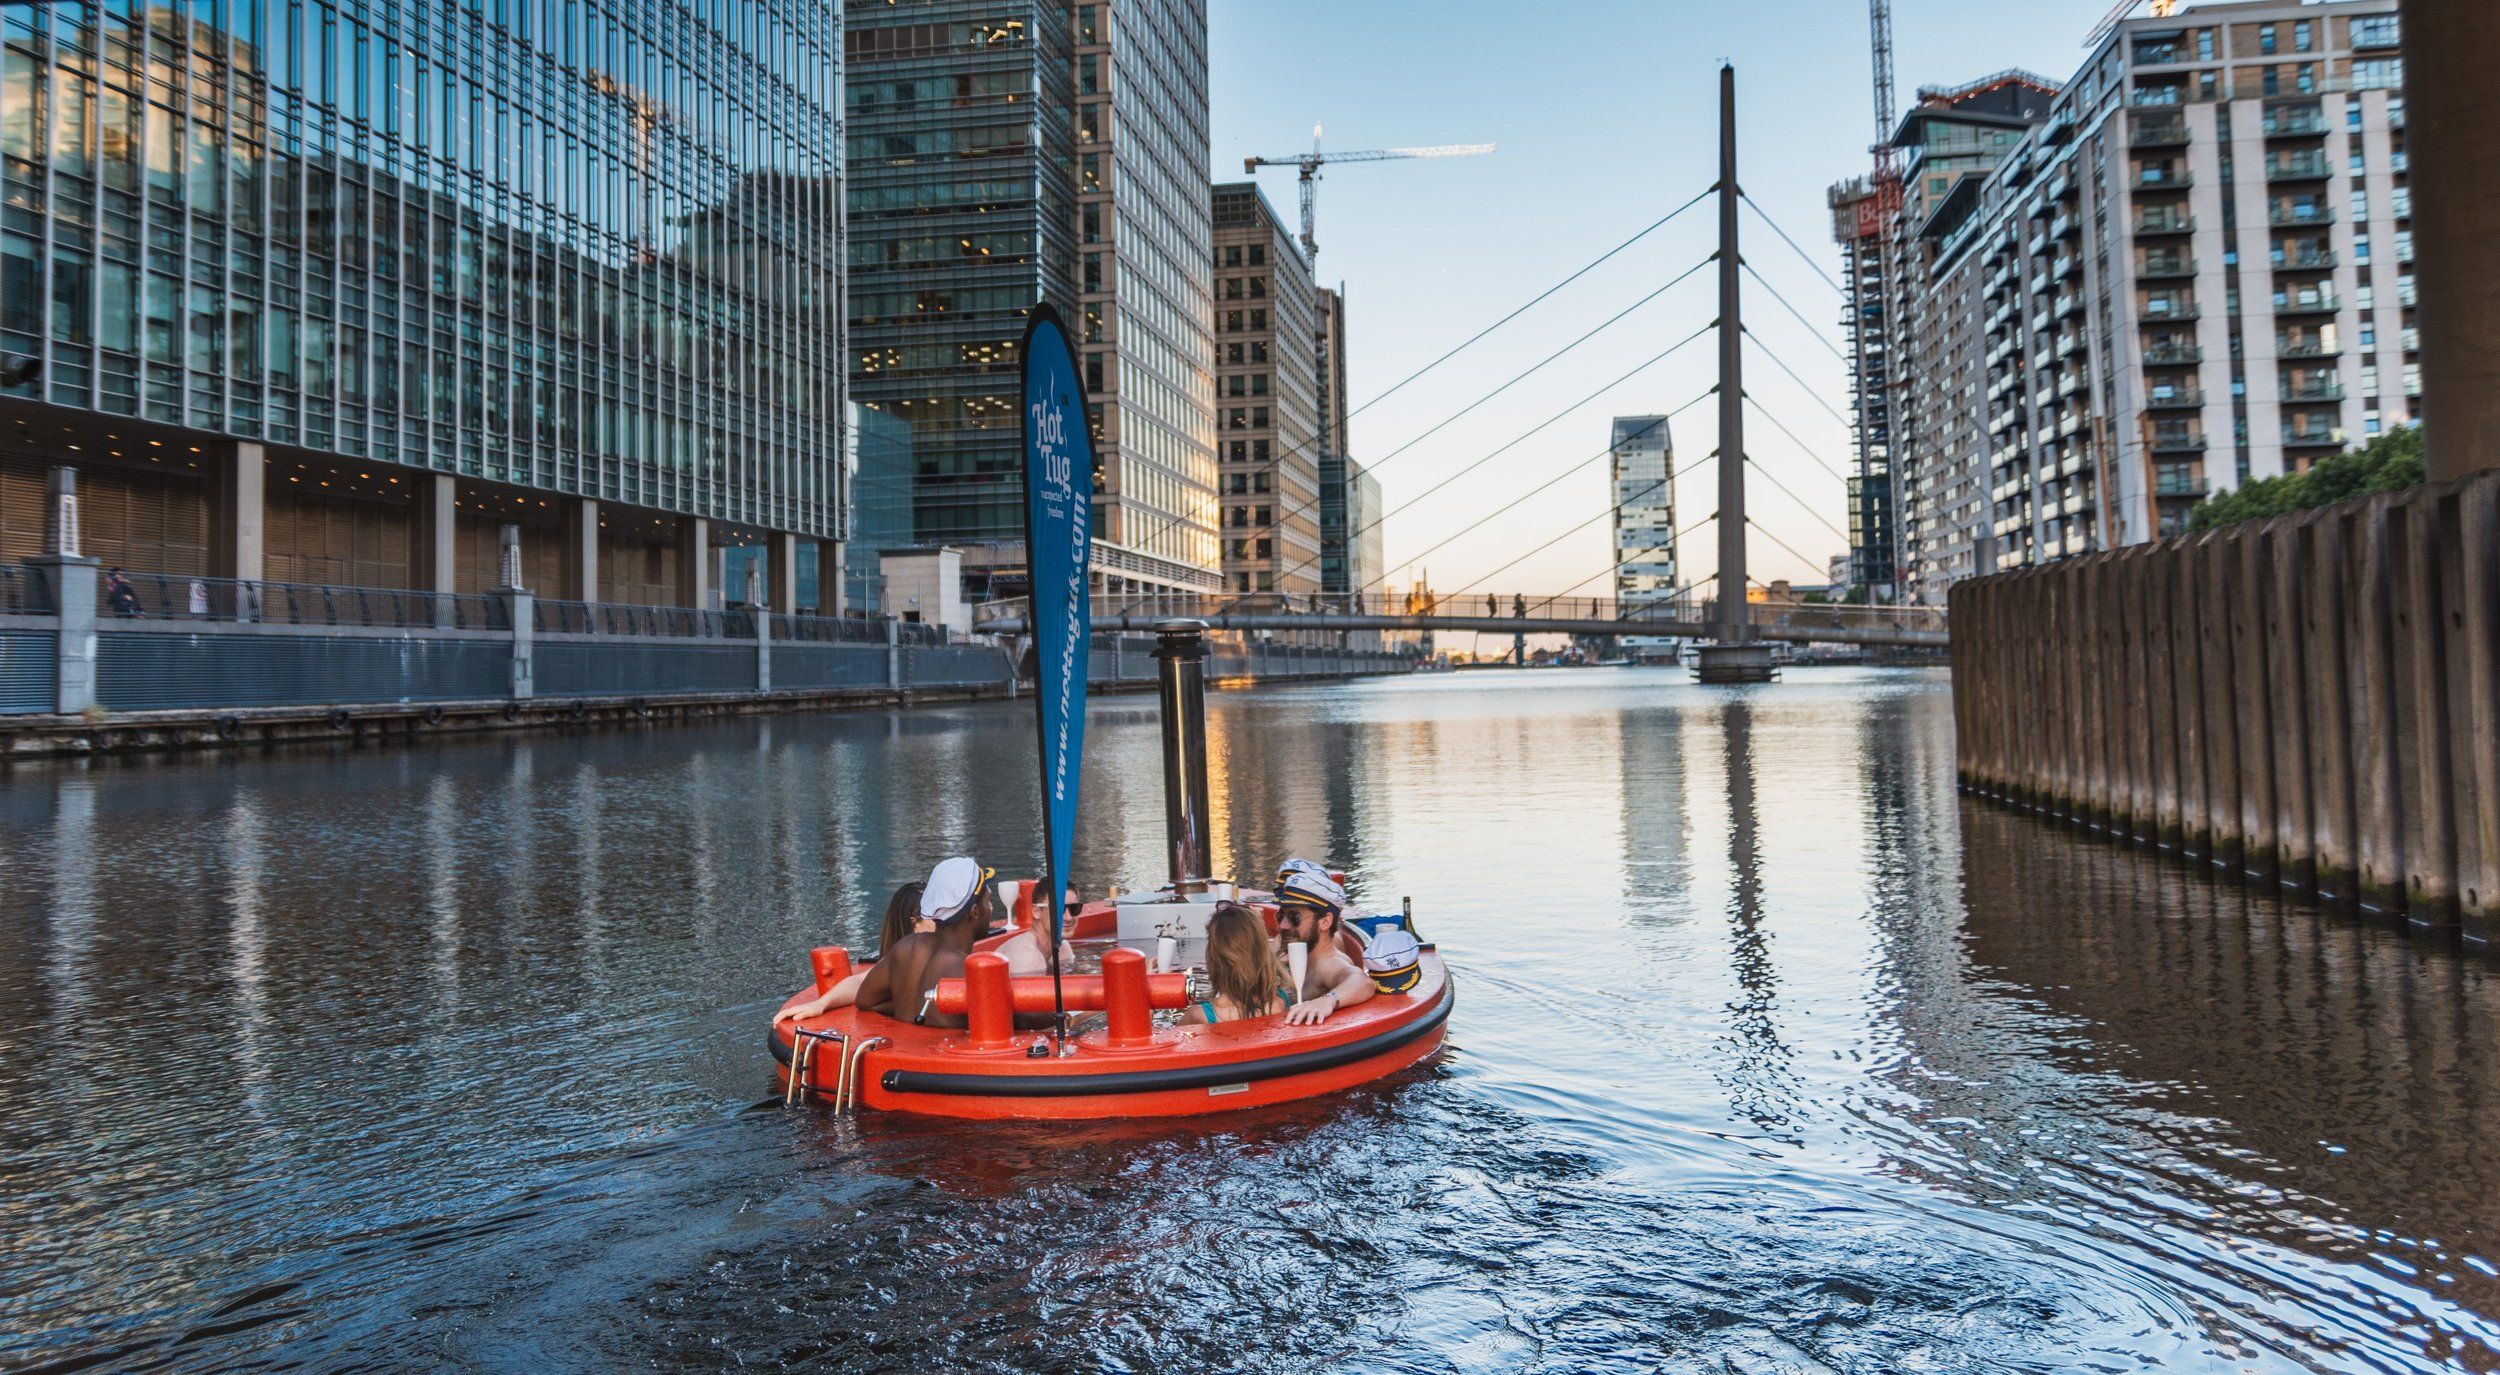 WEST INDIA QUAY/CANARY WHARF - Sailing between some of Europe's tallest buildings is quite the spectacle. An ideal base for groups. We also allow music at this location.